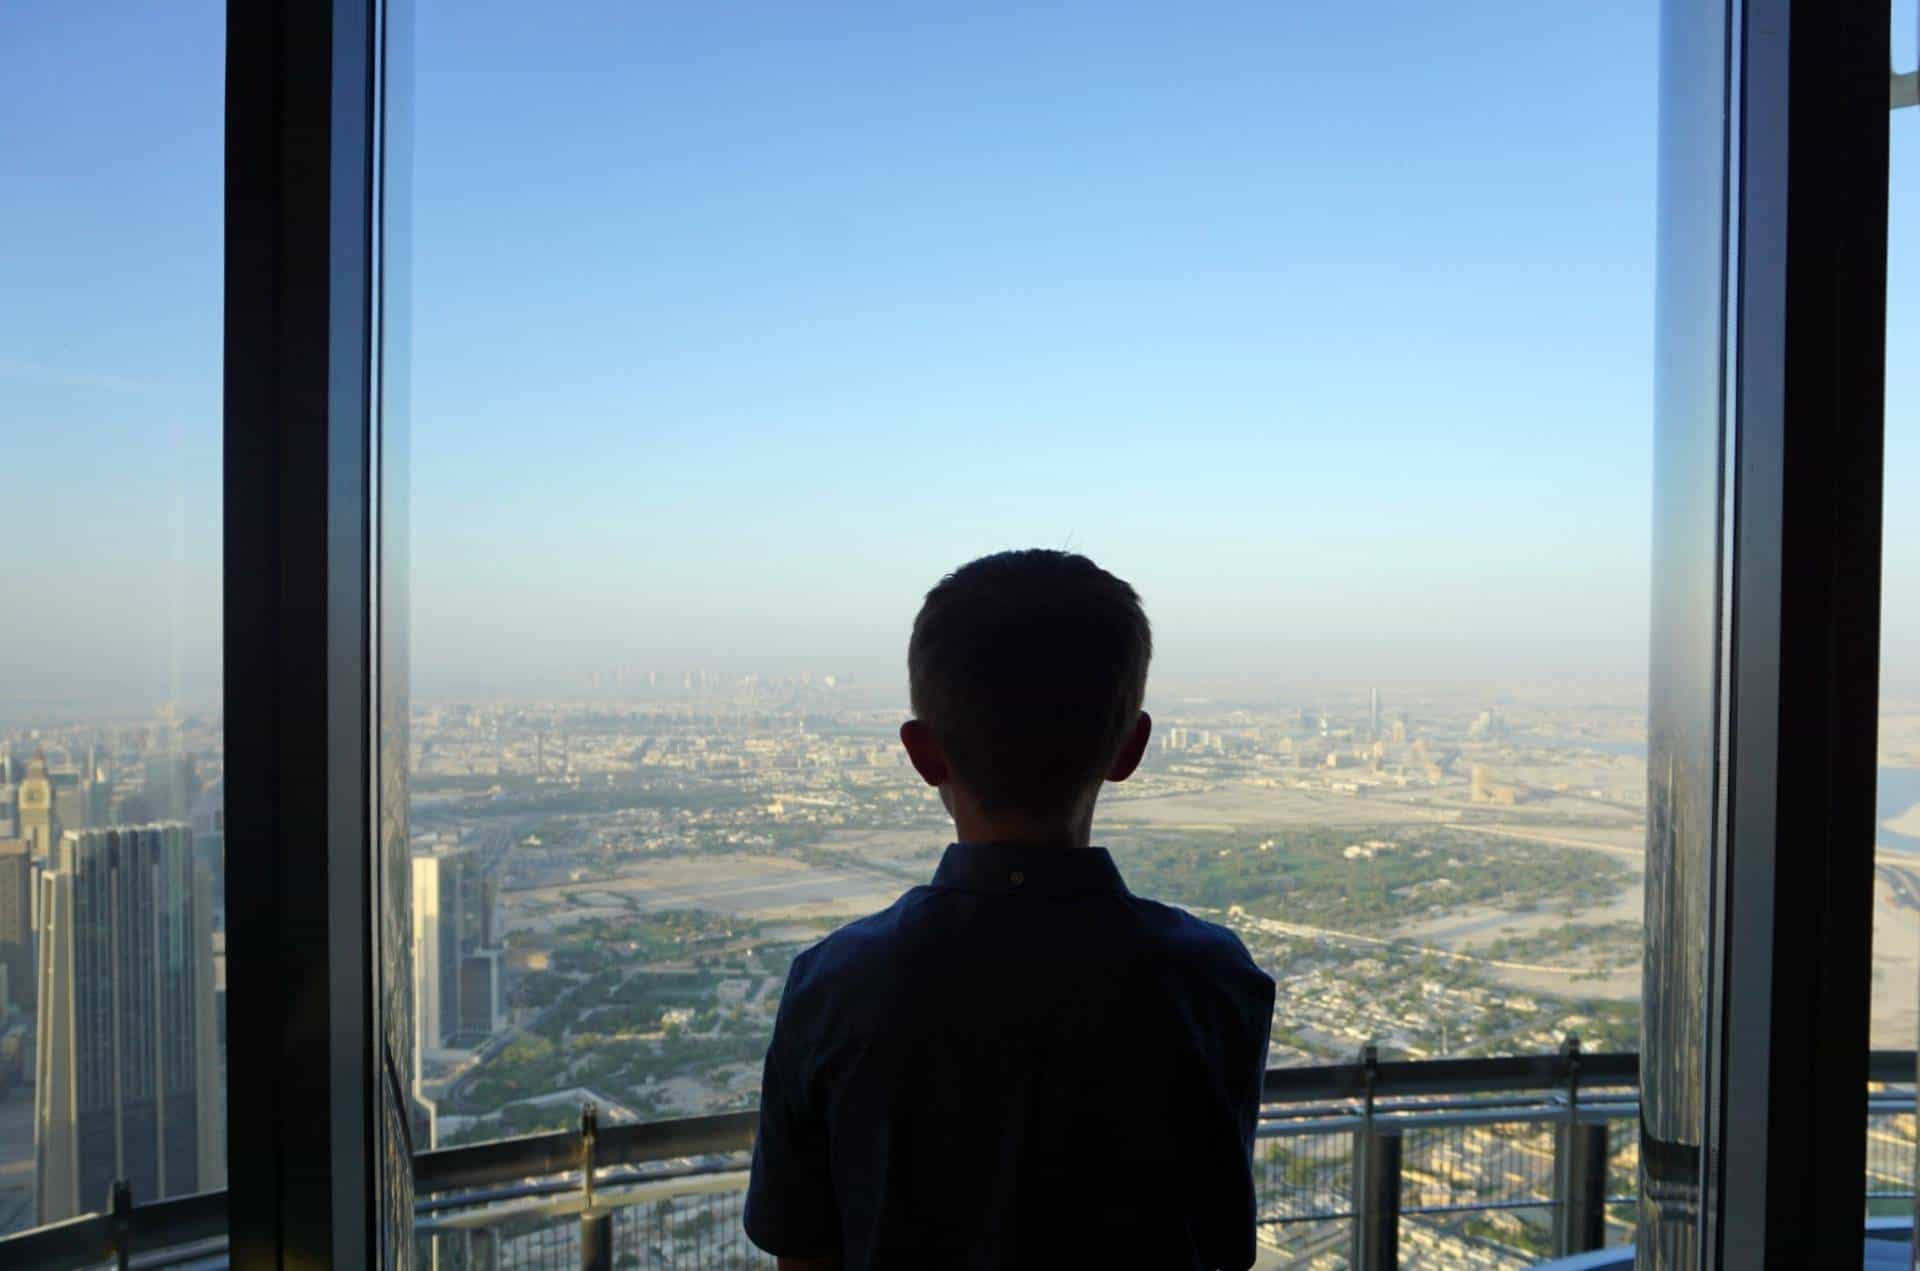 Visiting the Burj Khalifa with teens in Dubai www.extraordinarychaos.com